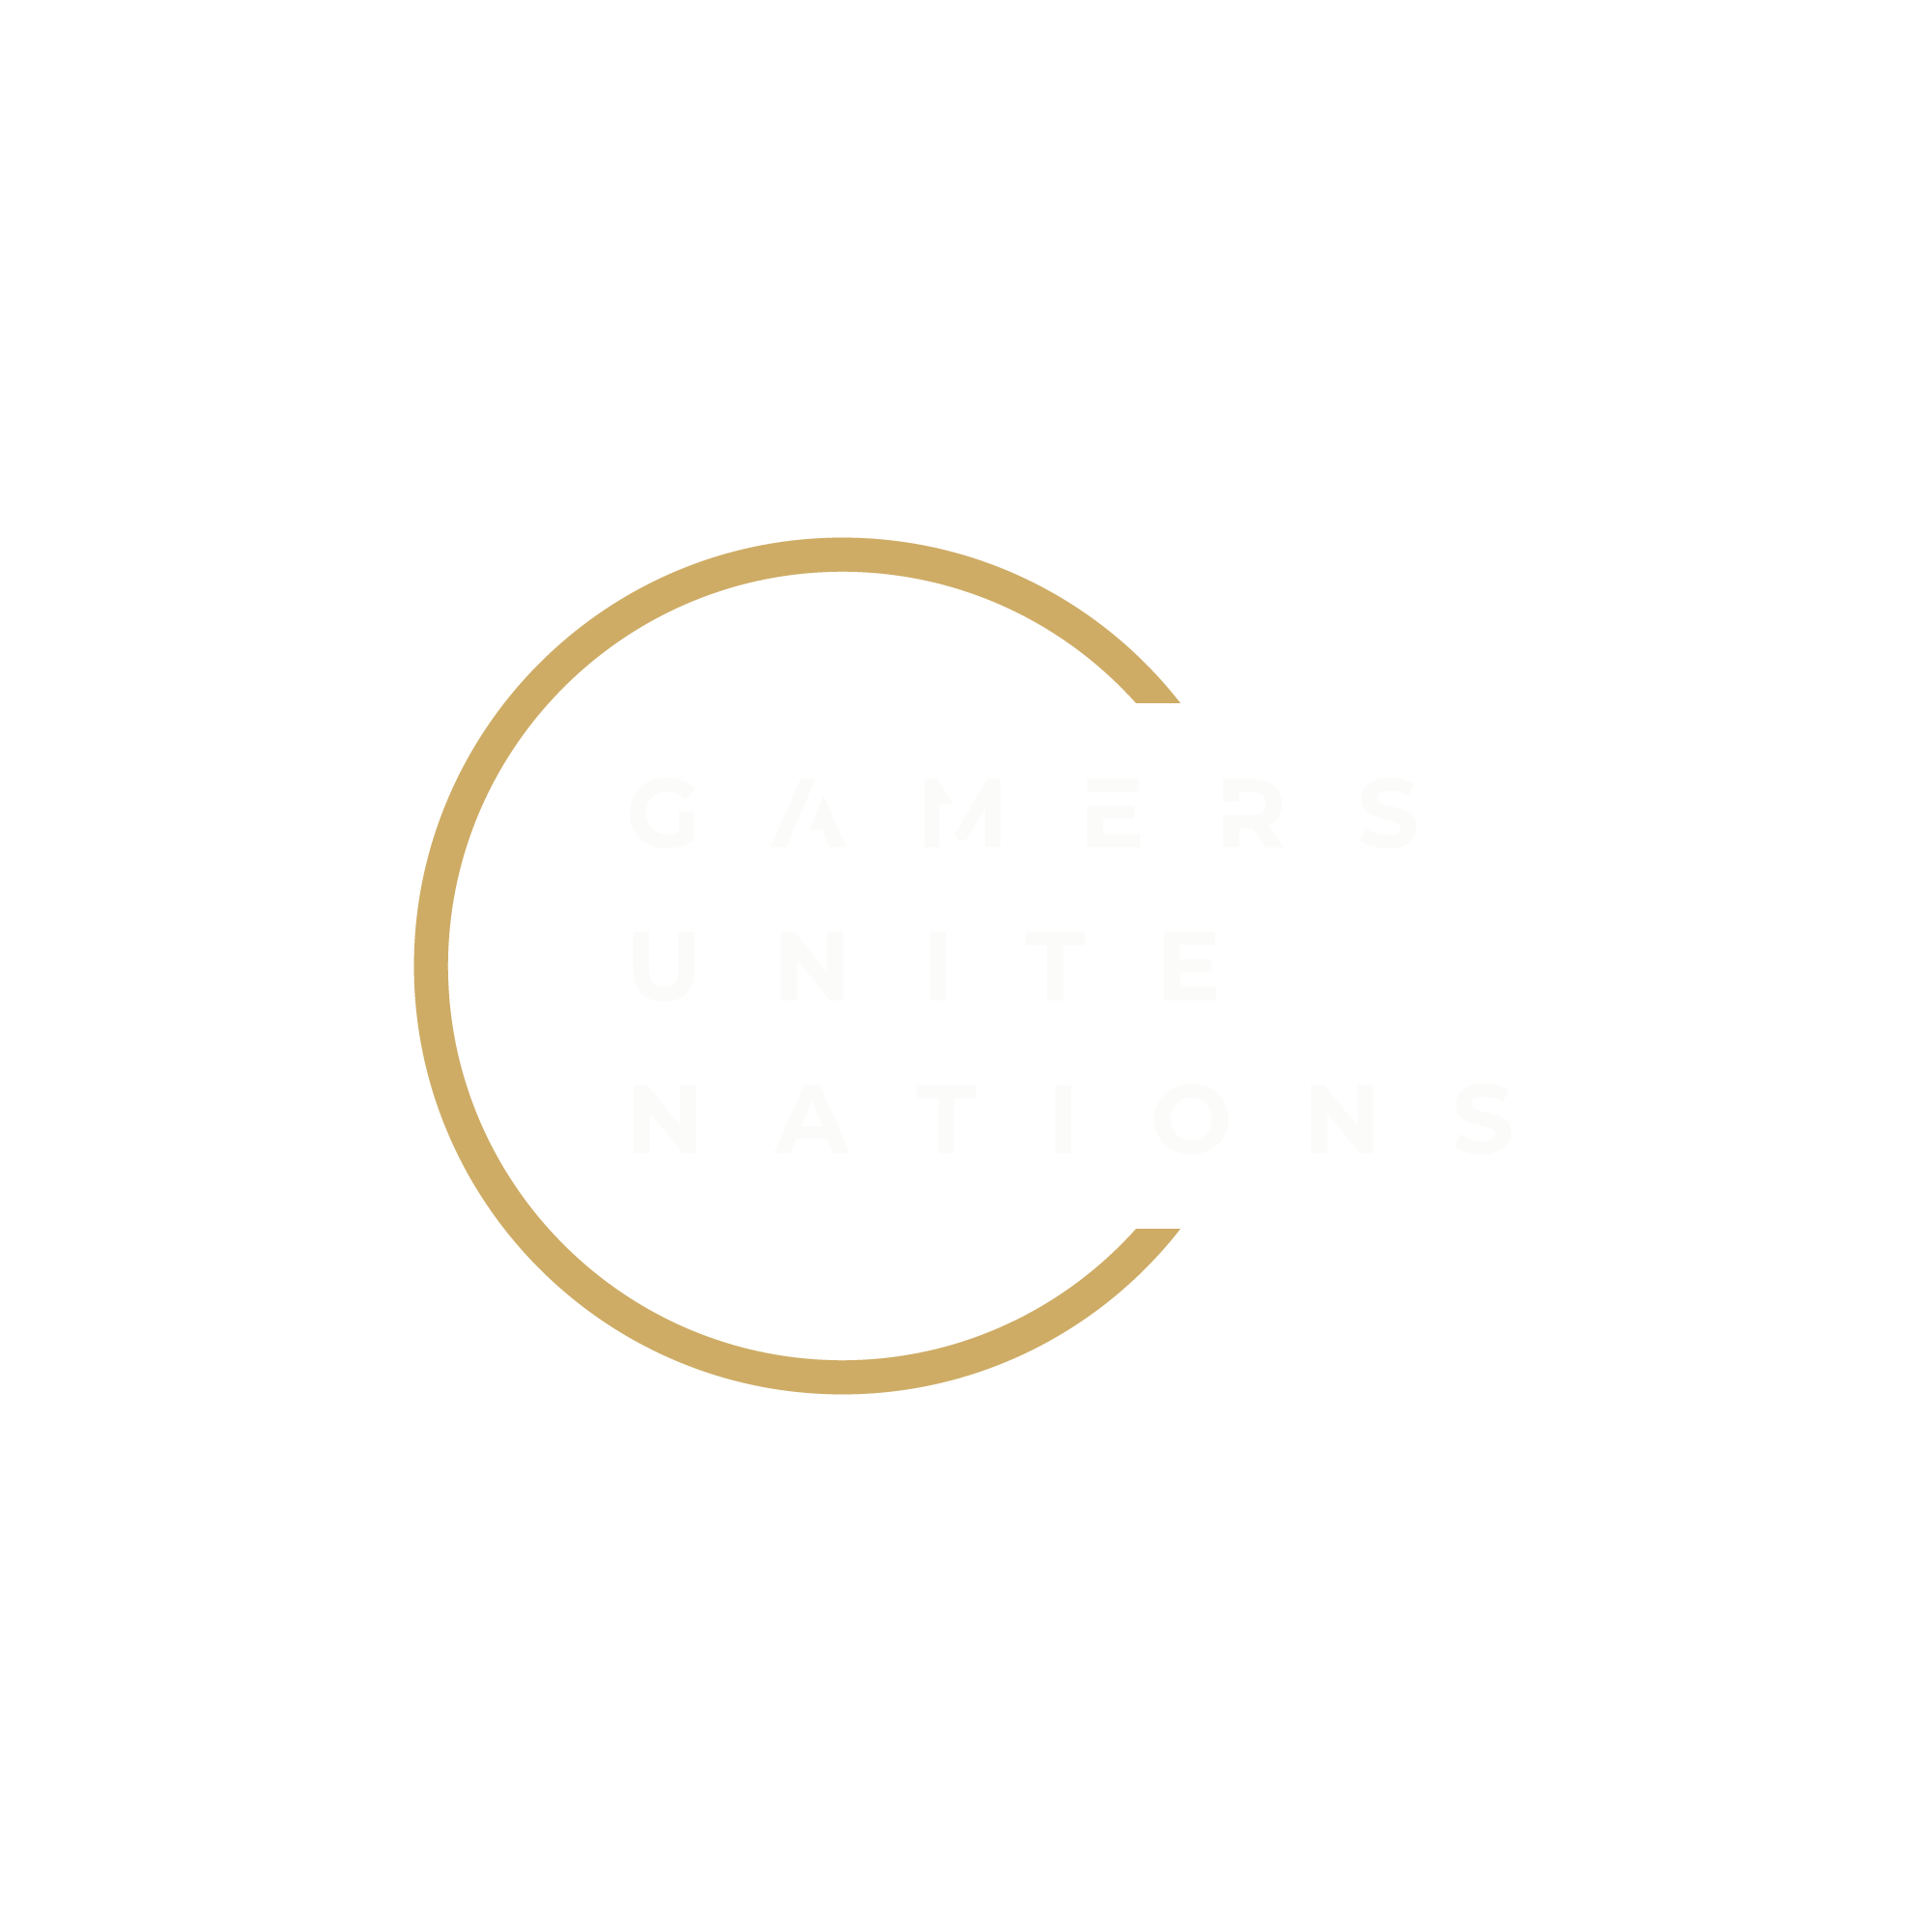 Background GAMERS UNITE NATIONS